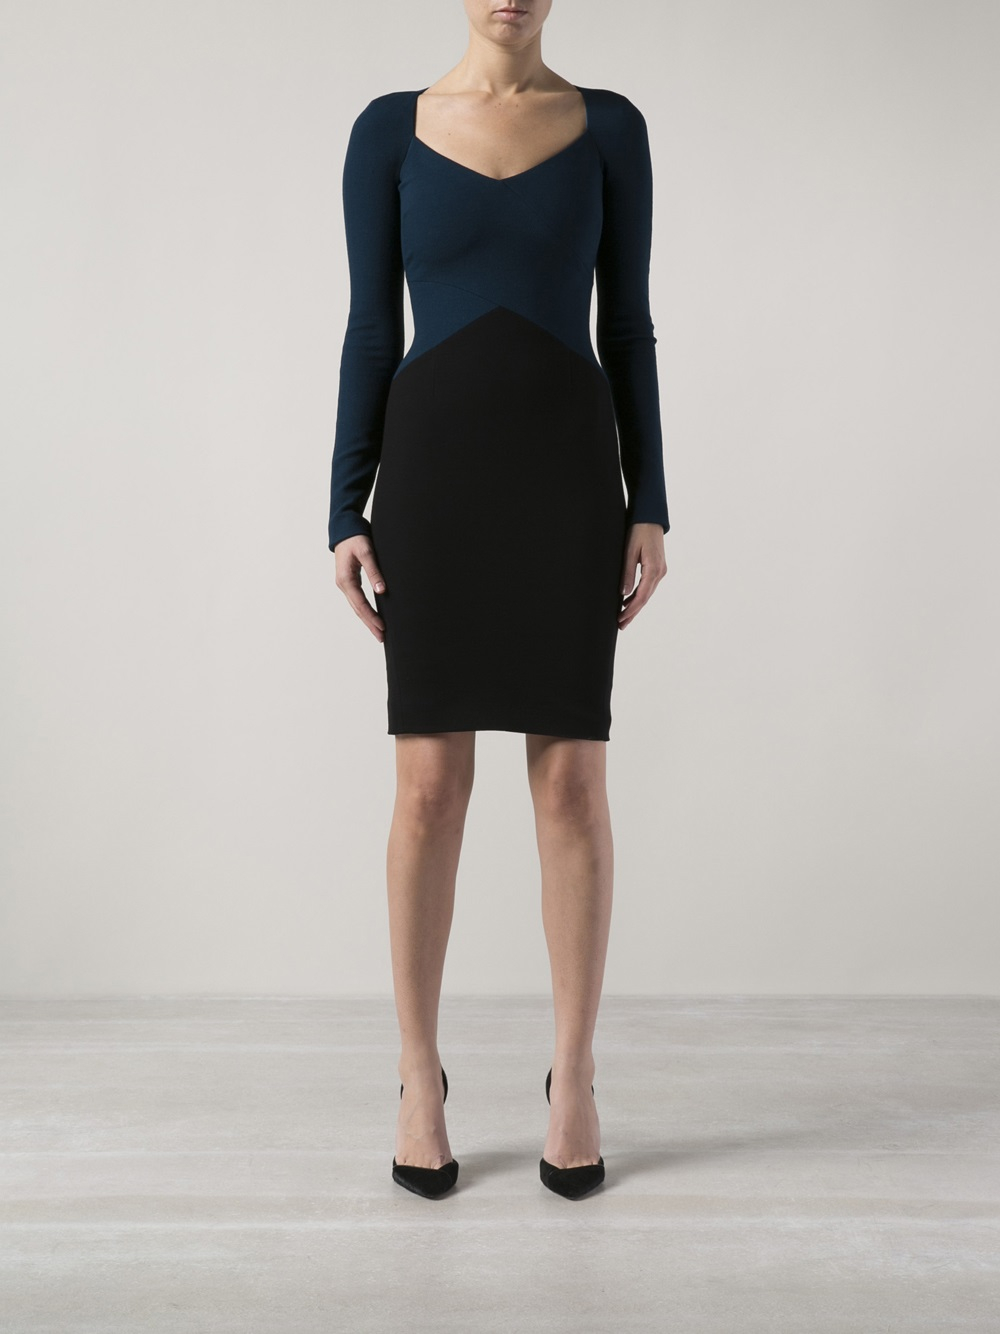 Lyst Narciso Rodriguez Pebble Crepe Dress In Blue